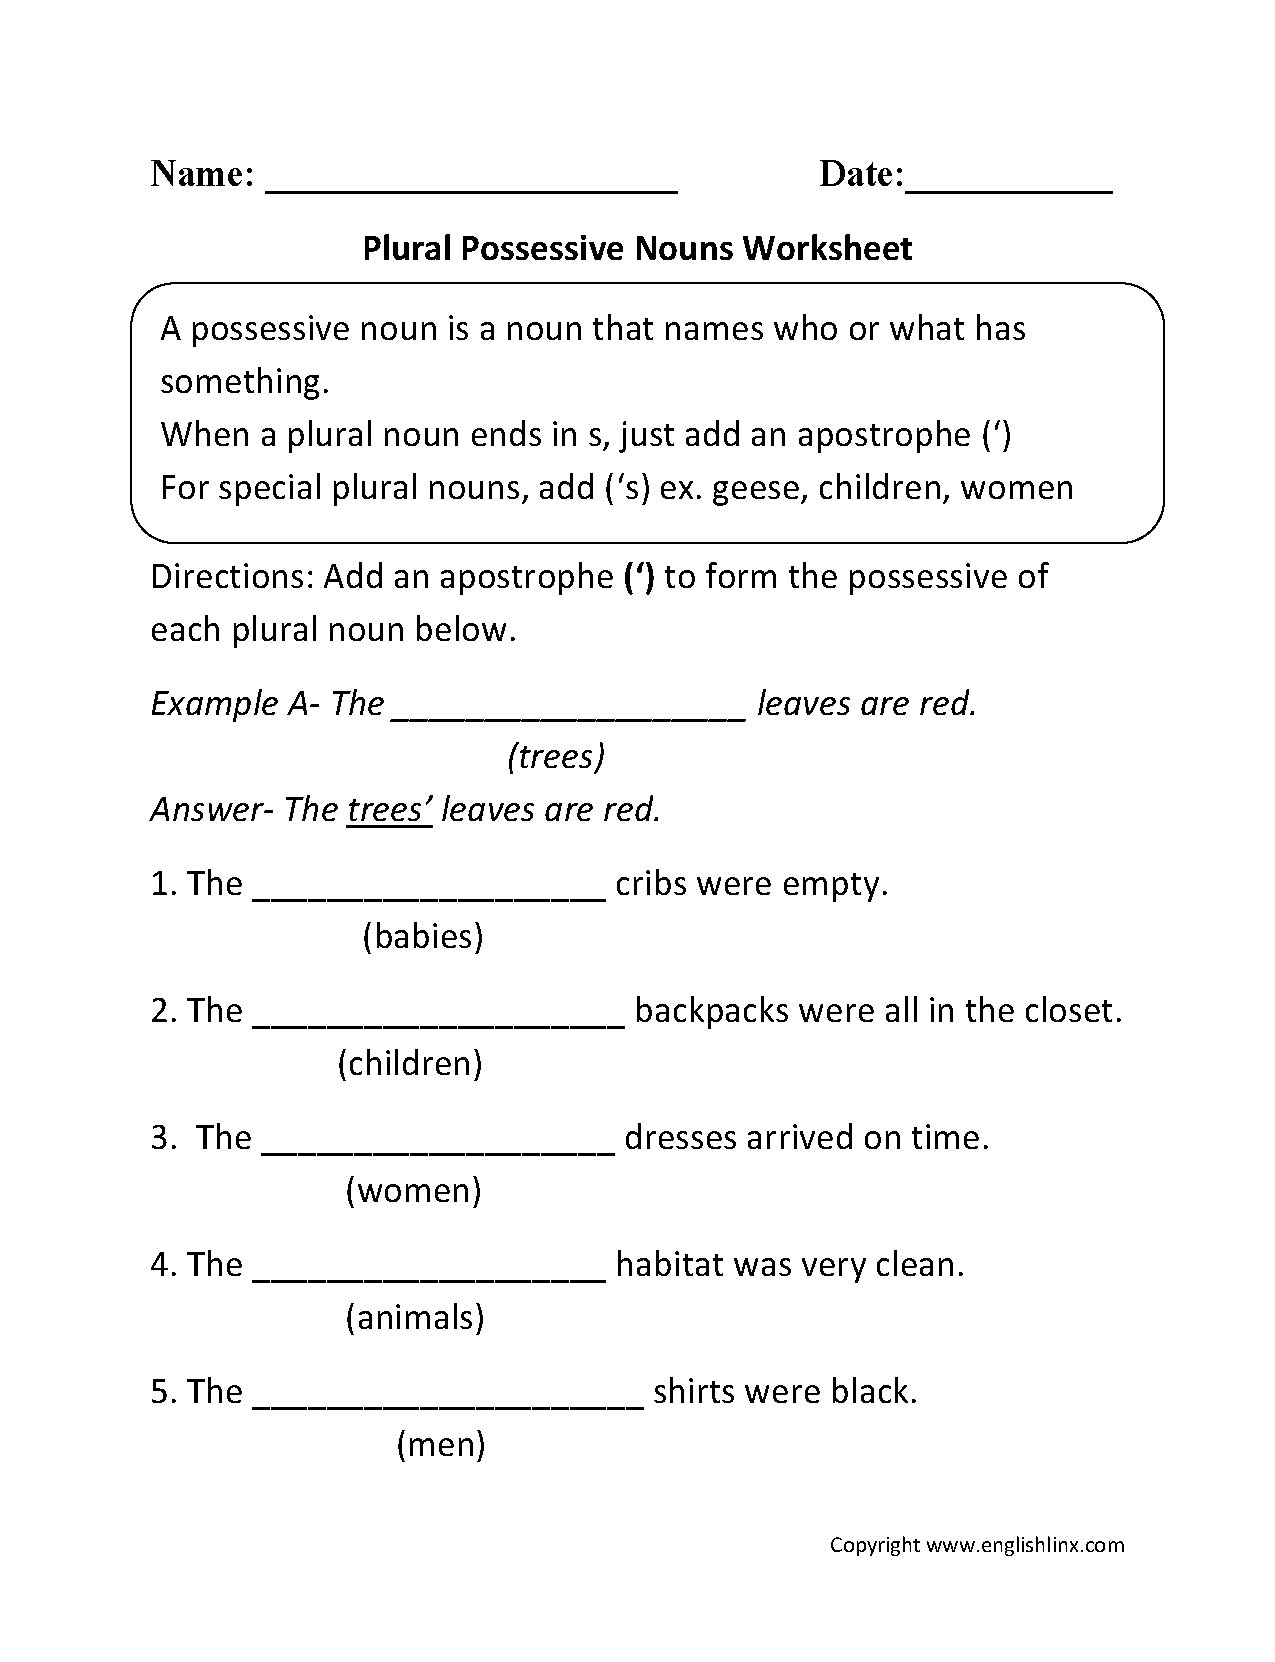 Aldiablosus  Pleasing Nouns Worksheets  Possessive Nouns Worksheets With Remarkable Possessive Nouns Worksheets With Delightful Numeration Worksheets Also Verbals Practice Worksheet In Addition Noun Pronoun Verb Adjective Adverb Worksheet And Reading Comprehension Worksheets For Third Grade As Well As Angle Of Depression Worksheet Additionally Instructional Fair Worksheets From Englishlinxcom With Aldiablosus  Remarkable Nouns Worksheets  Possessive Nouns Worksheets With Delightful Possessive Nouns Worksheets And Pleasing Numeration Worksheets Also Verbals Practice Worksheet In Addition Noun Pronoun Verb Adjective Adverb Worksheet From Englishlinxcom